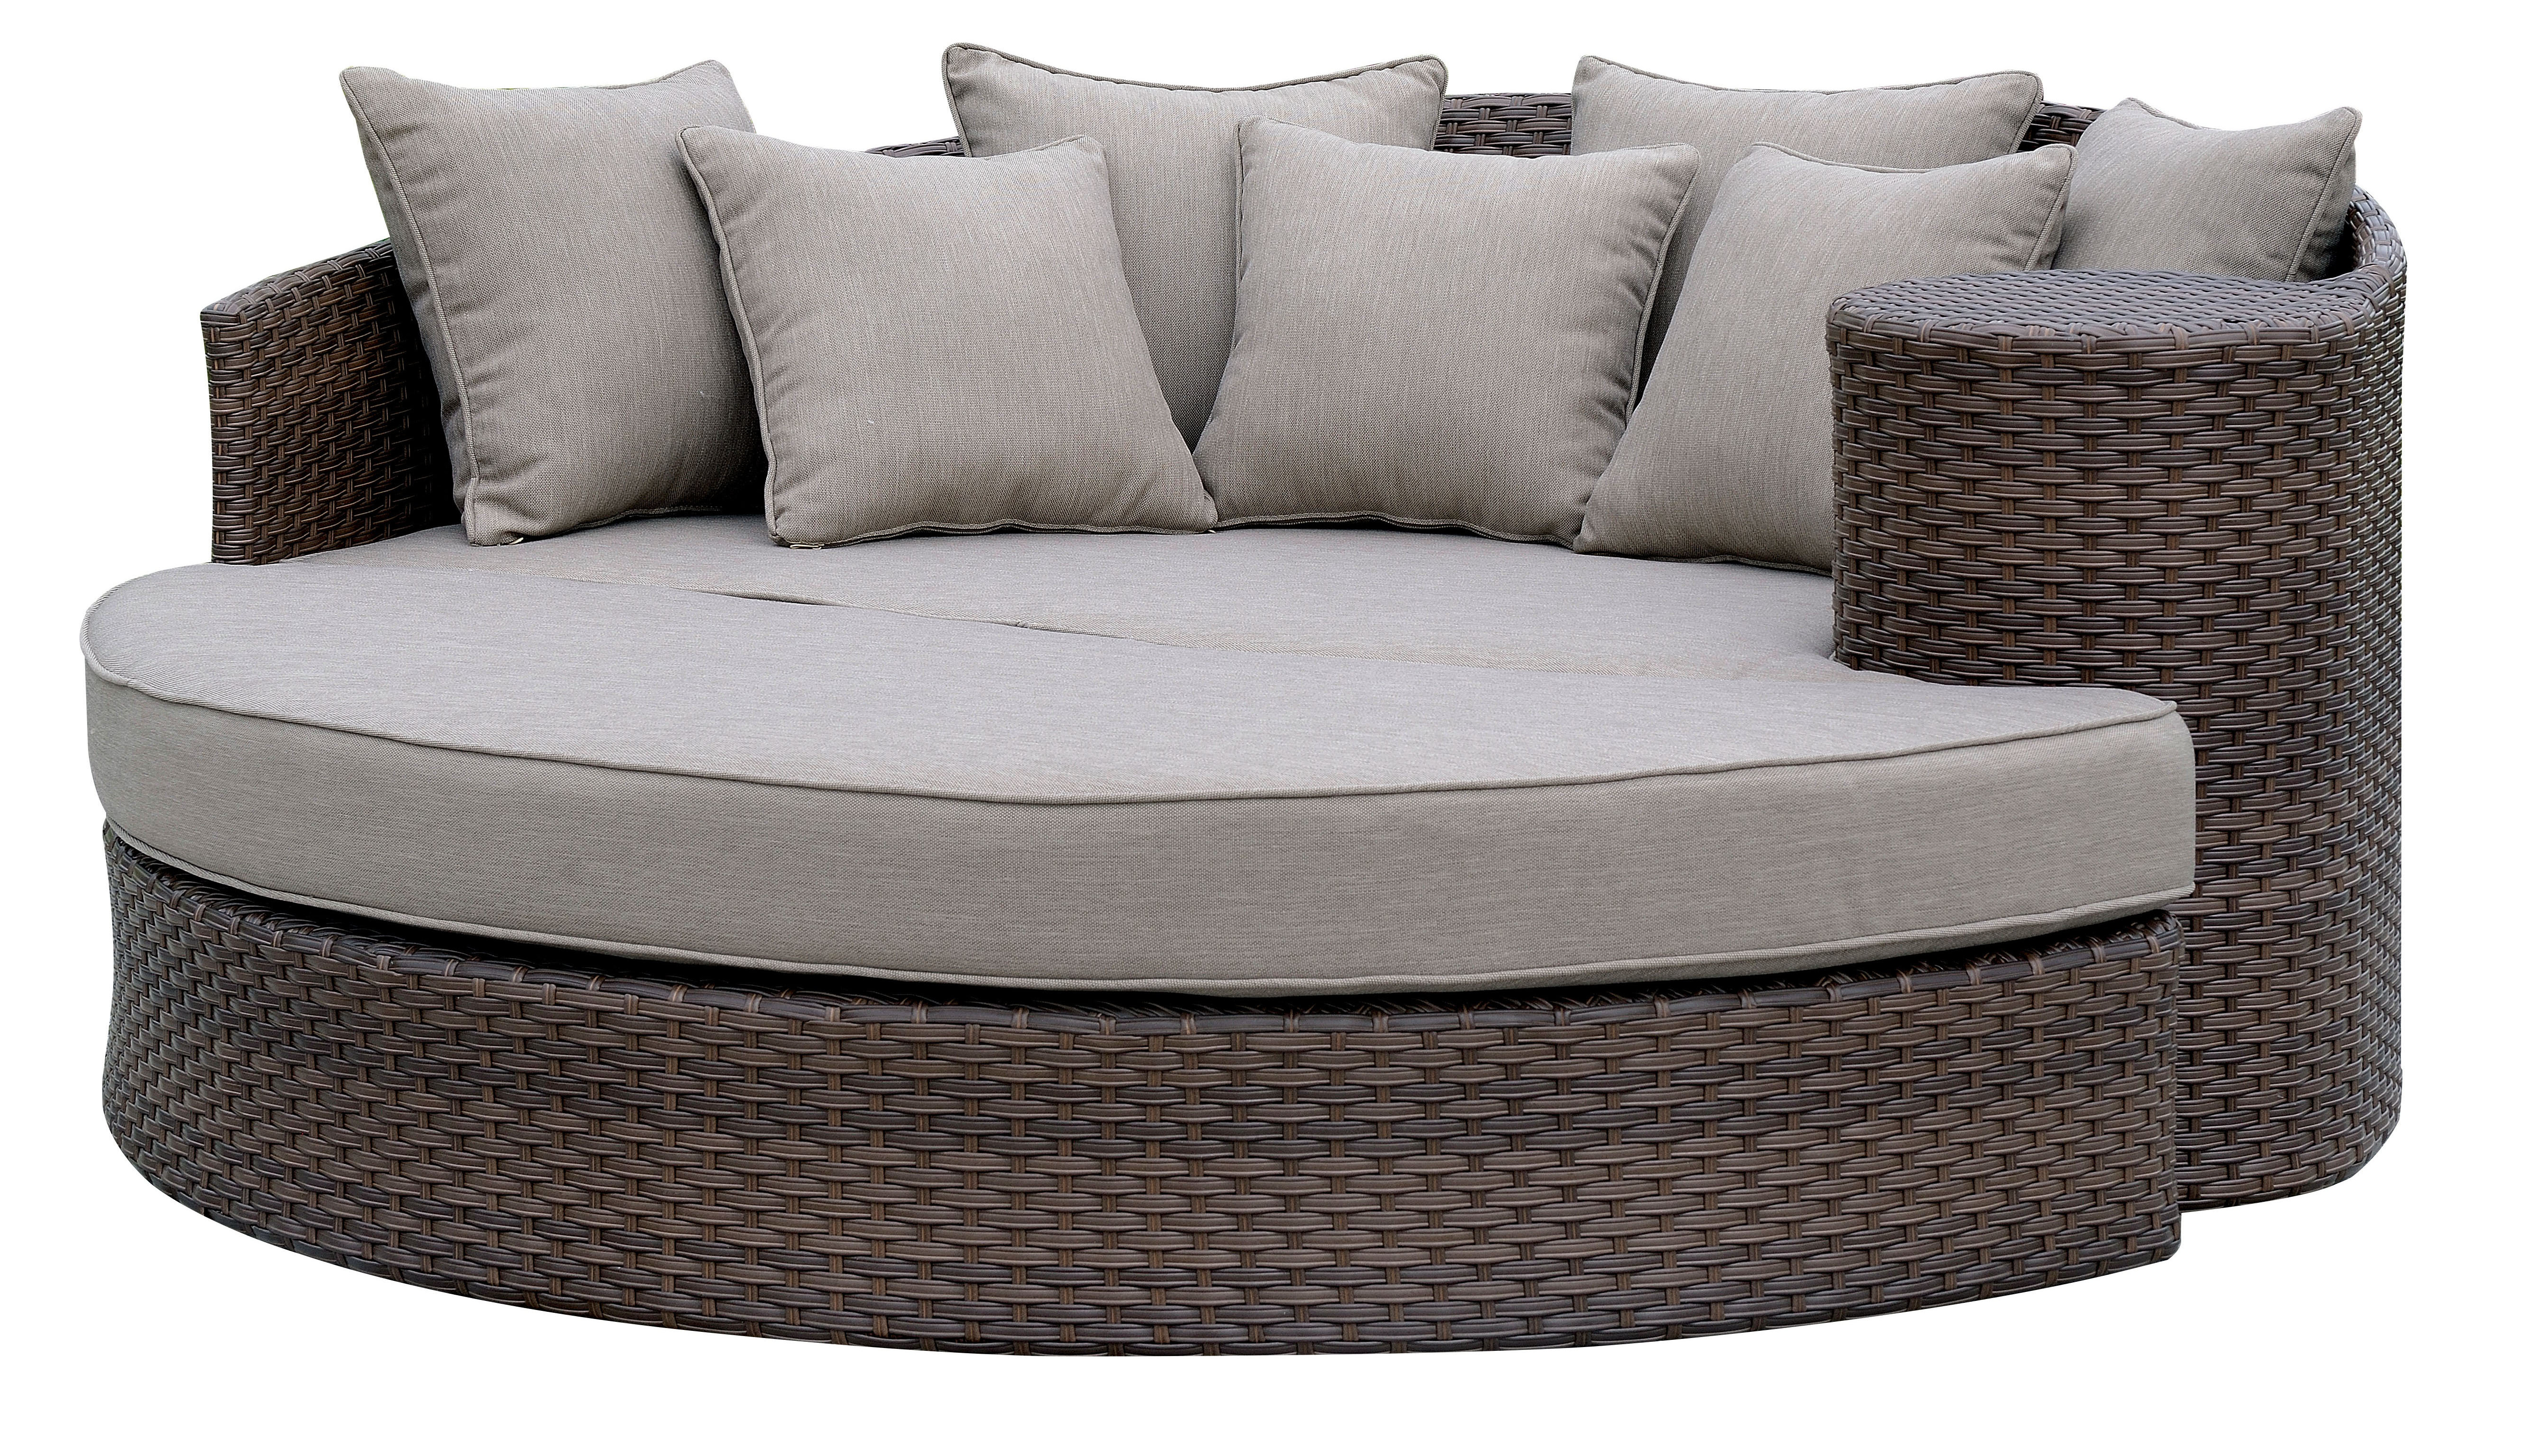 2020 Whyte Contemporary Patio Daybed With Cushions Inside Brentwood Patio Daybeds With Cushions (View 2 of 25)